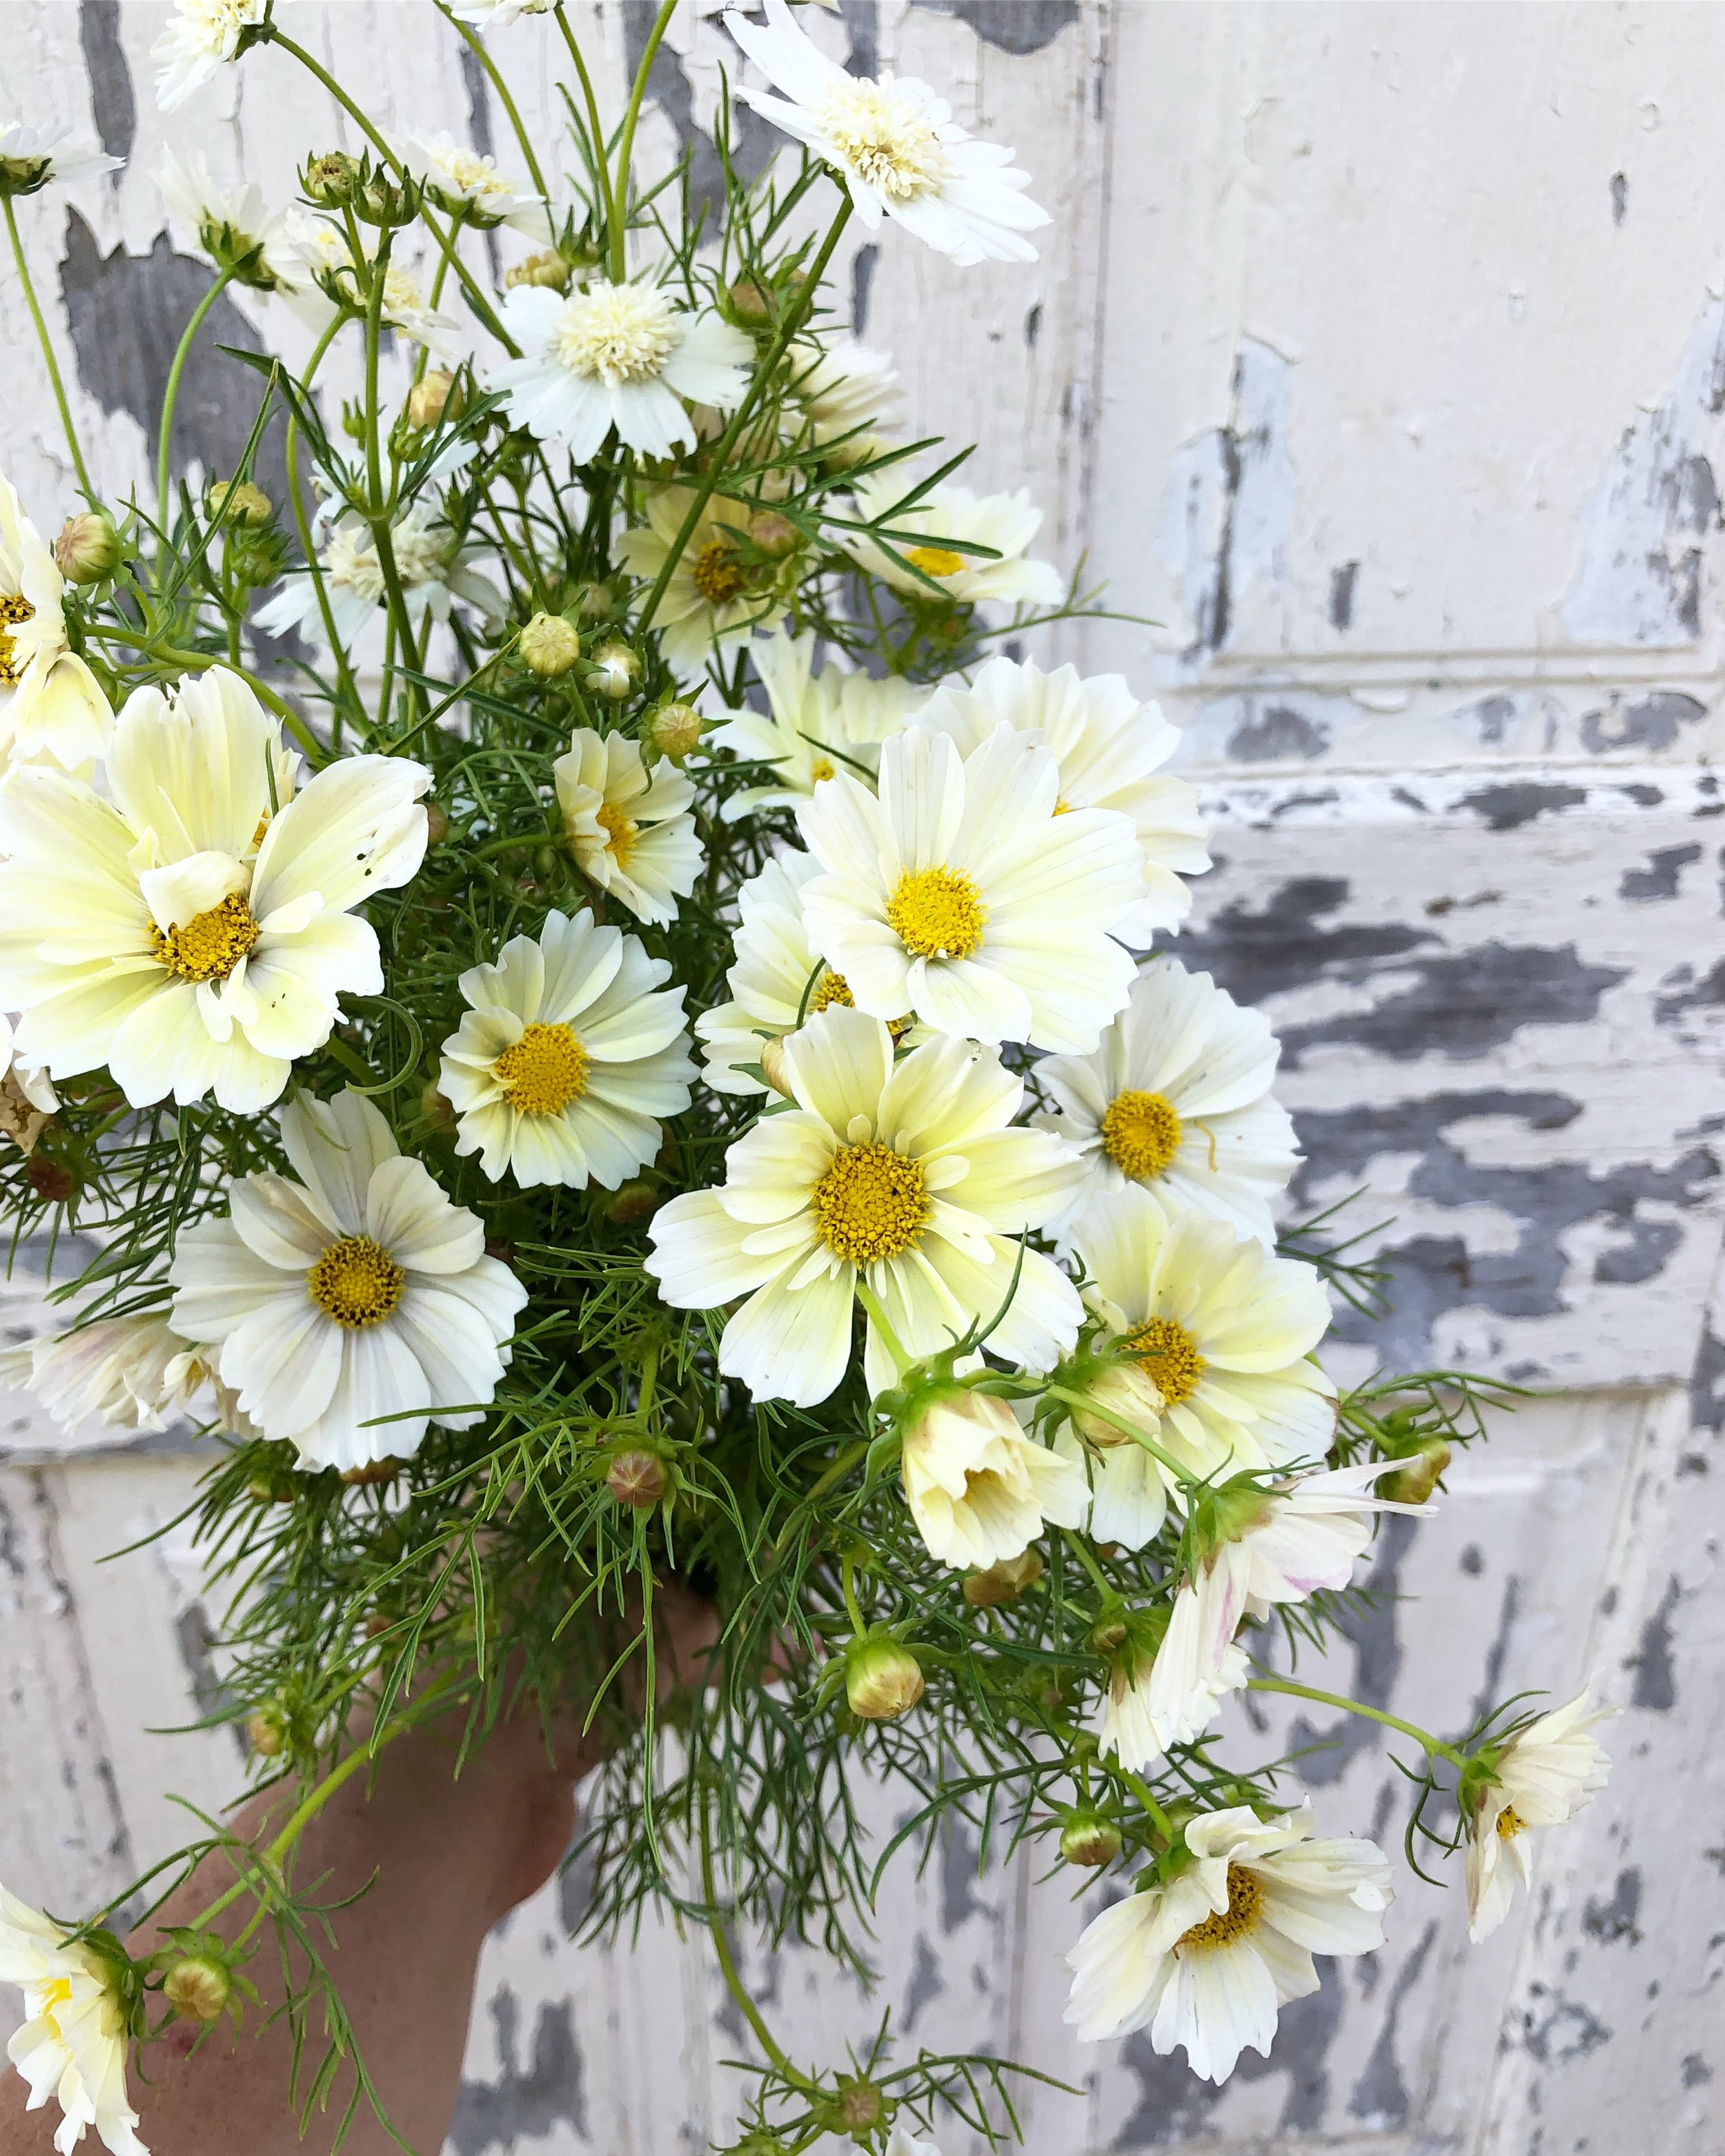 A healthy handful of 'Xanthos' cosmos outside the studio door. The first of the season.